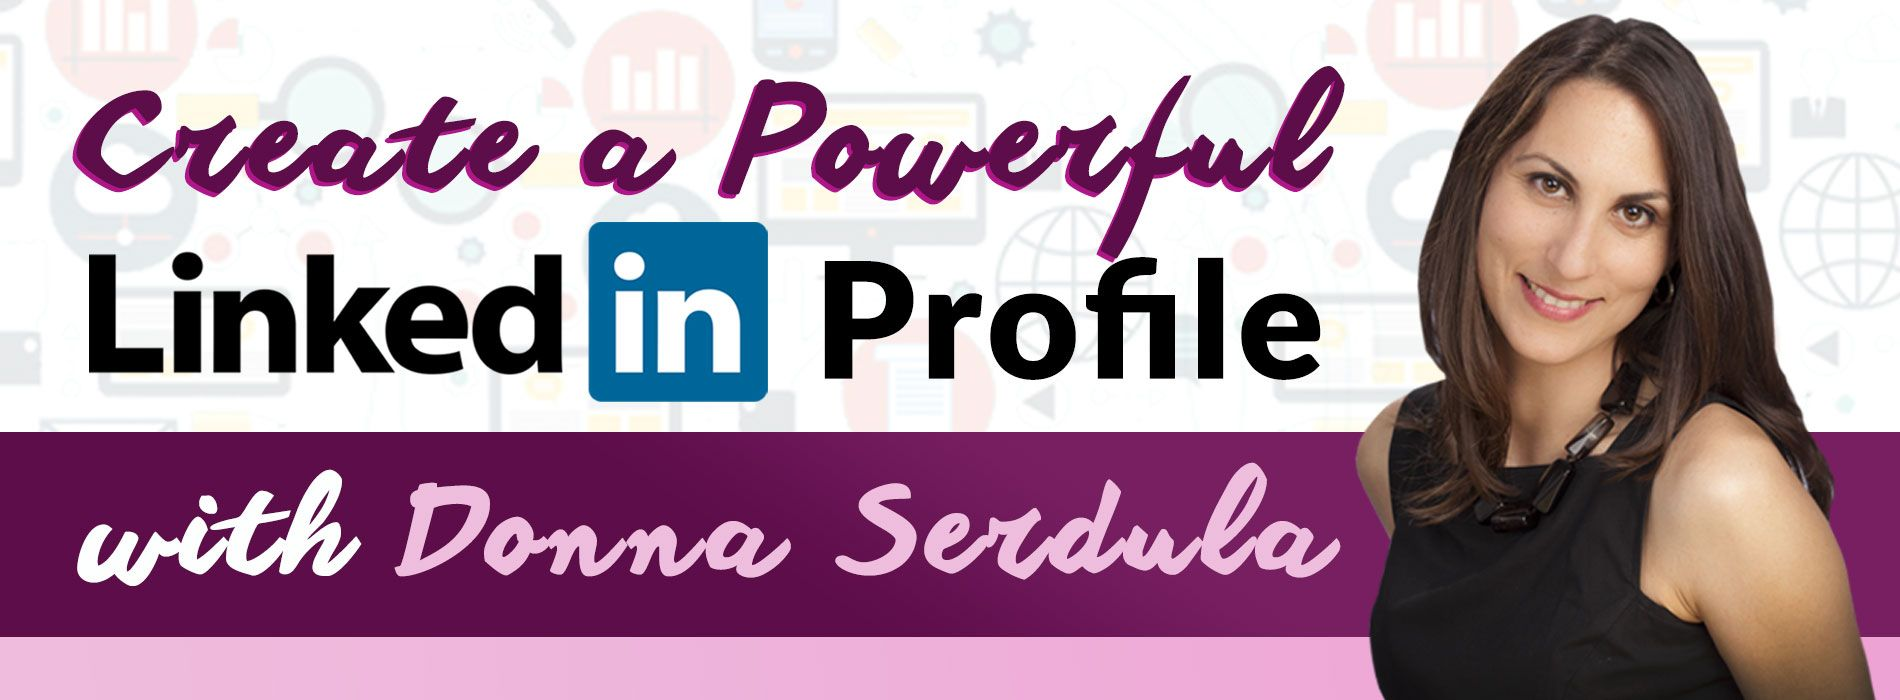 3 Questions That Will Optimize Your LinkedIn Profile for More Opportunities, Leads and Sales.